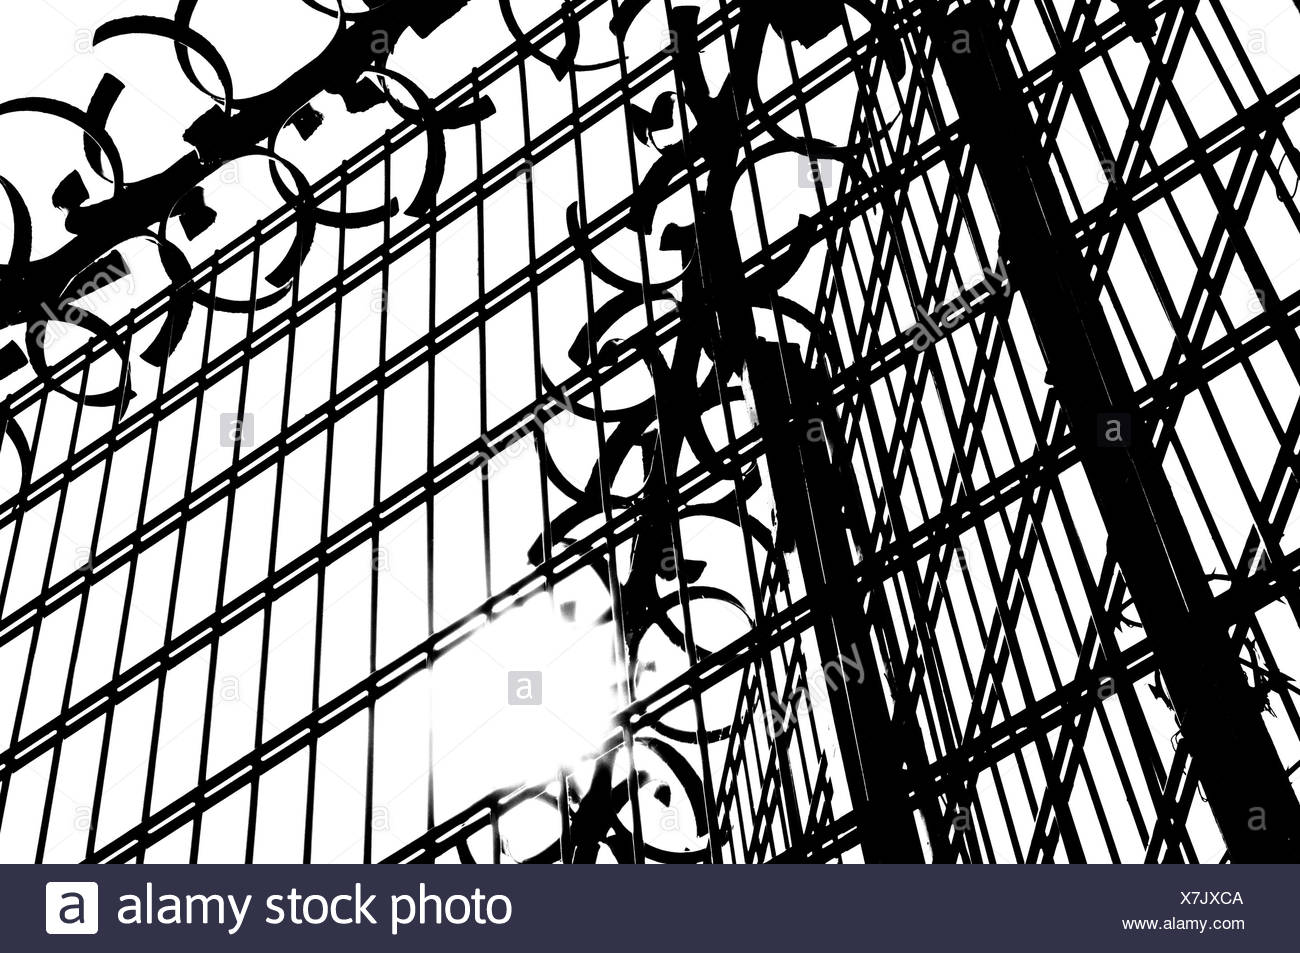 Security fence - Stock Image